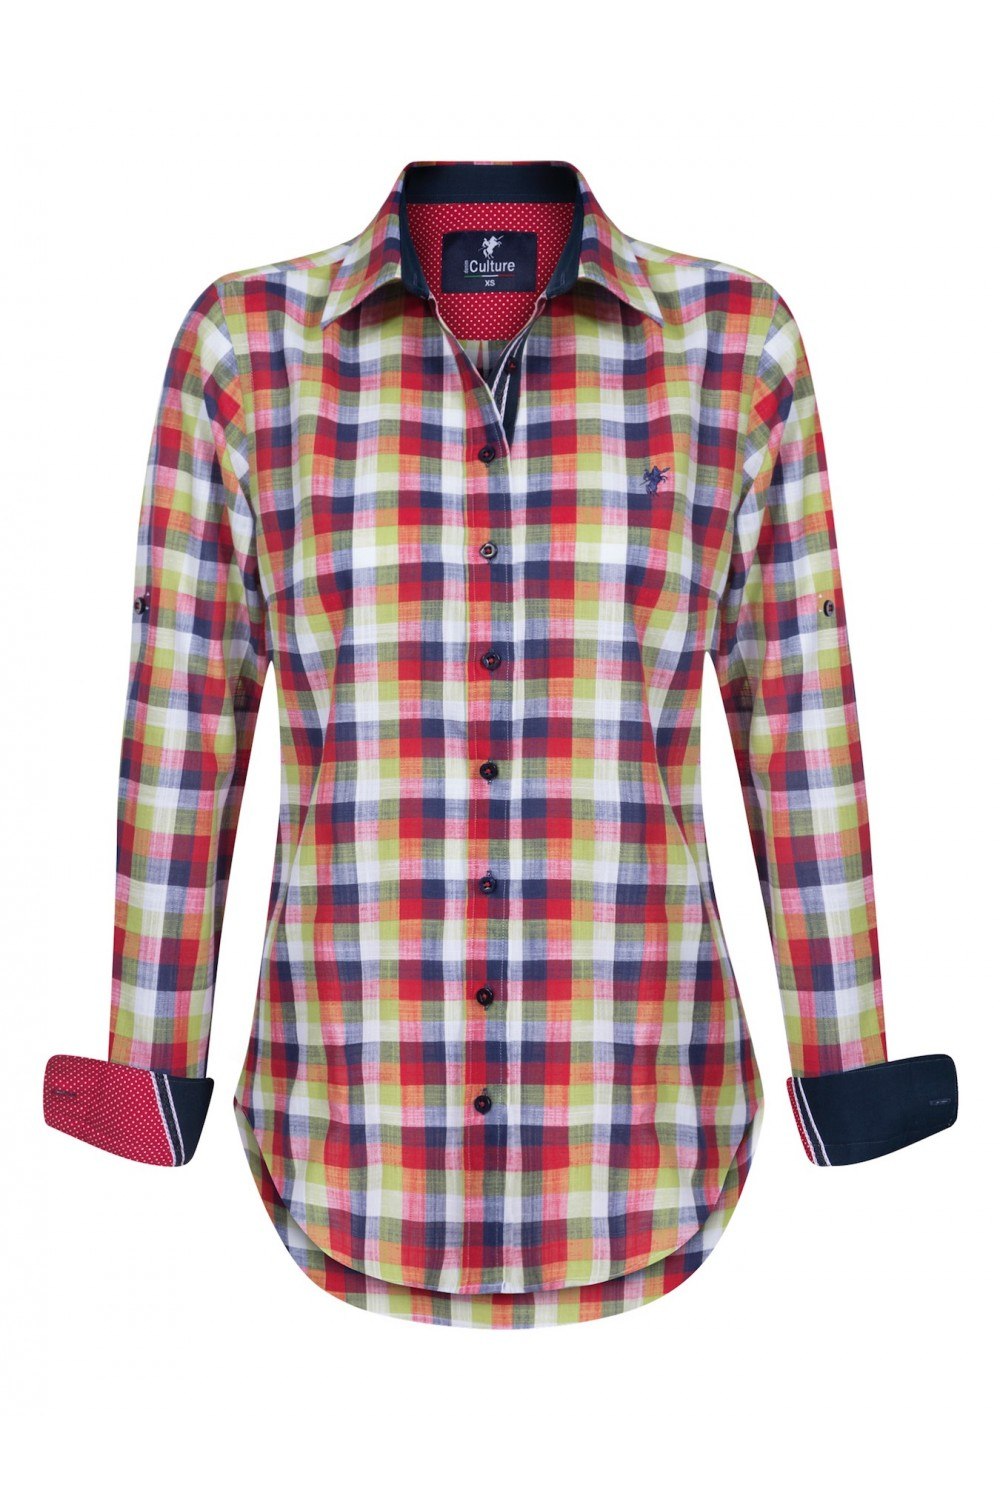 Women's Blouse Red Checked Cotton